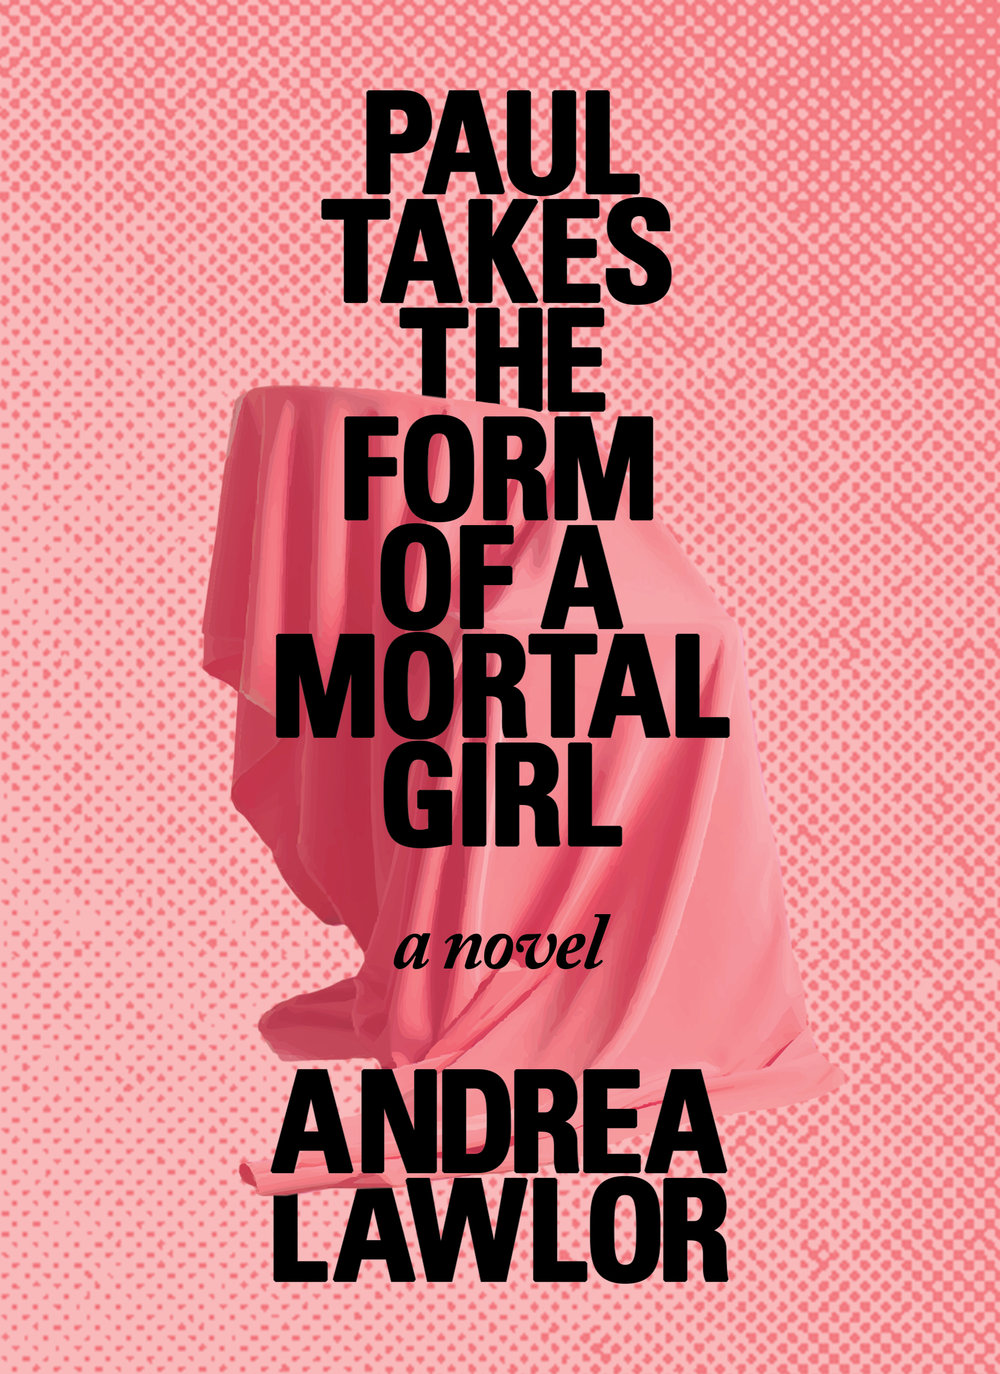 072617-Paul-Takes-the-Form-of-a-Mortal-Girl_Front-Cover copy.jpg